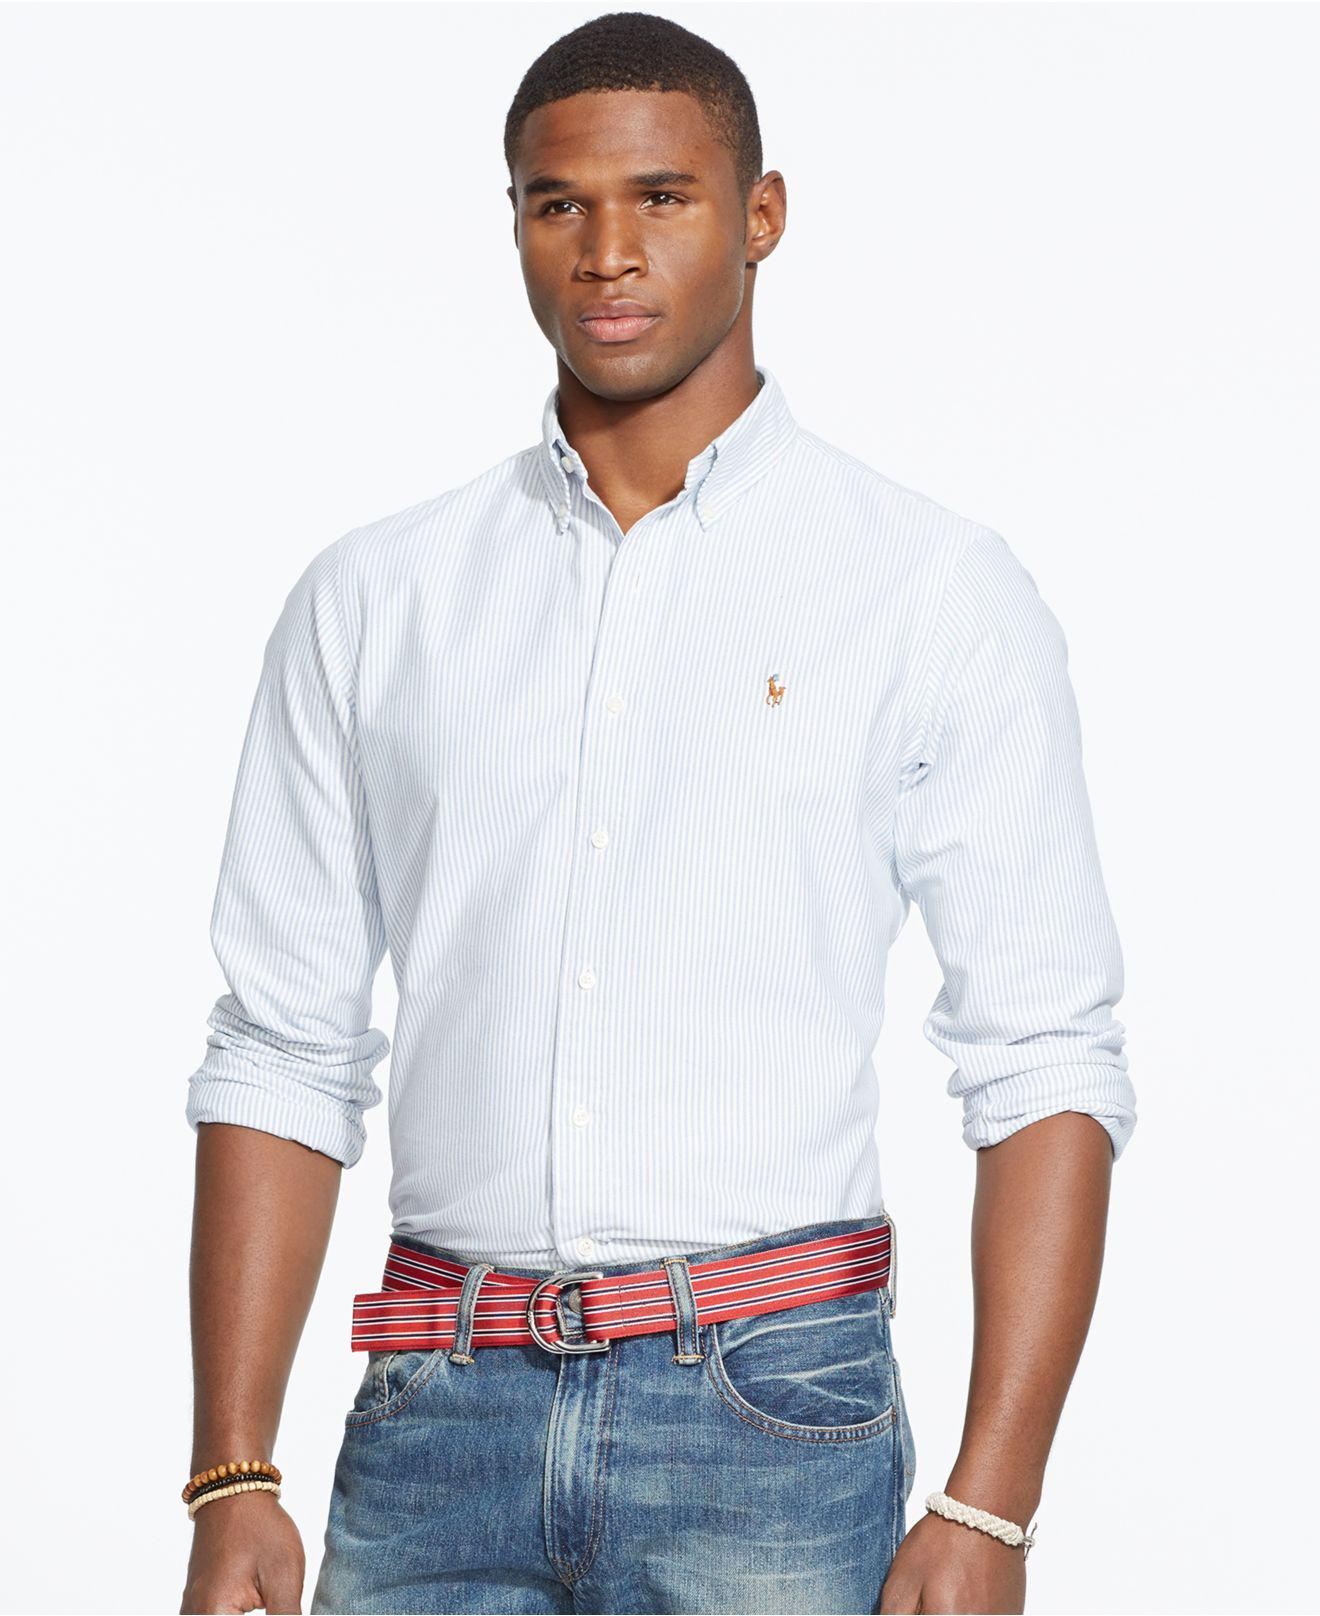 35a679f113 Lyst - Polo Ralph Lauren Multi-striped Oxford Shirt in White for Men